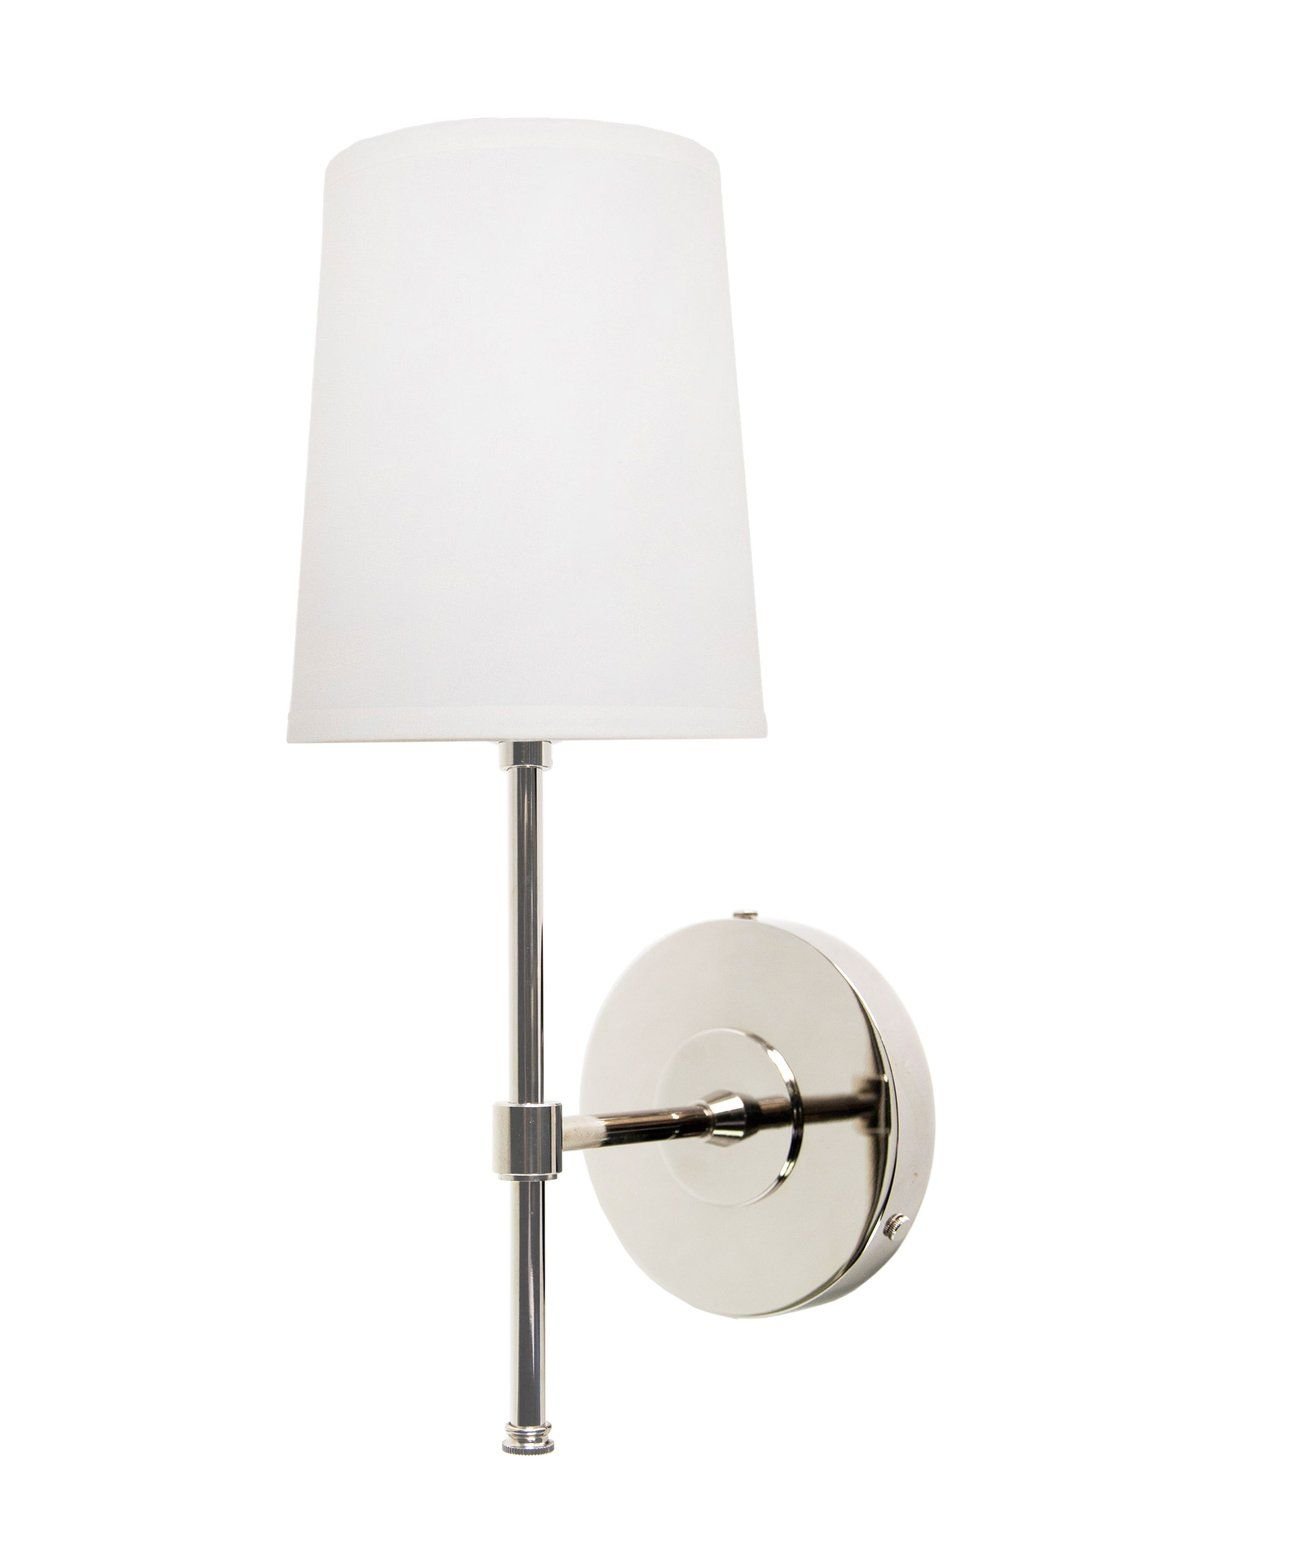 Annapolis Wall Sconce With Linen Shade